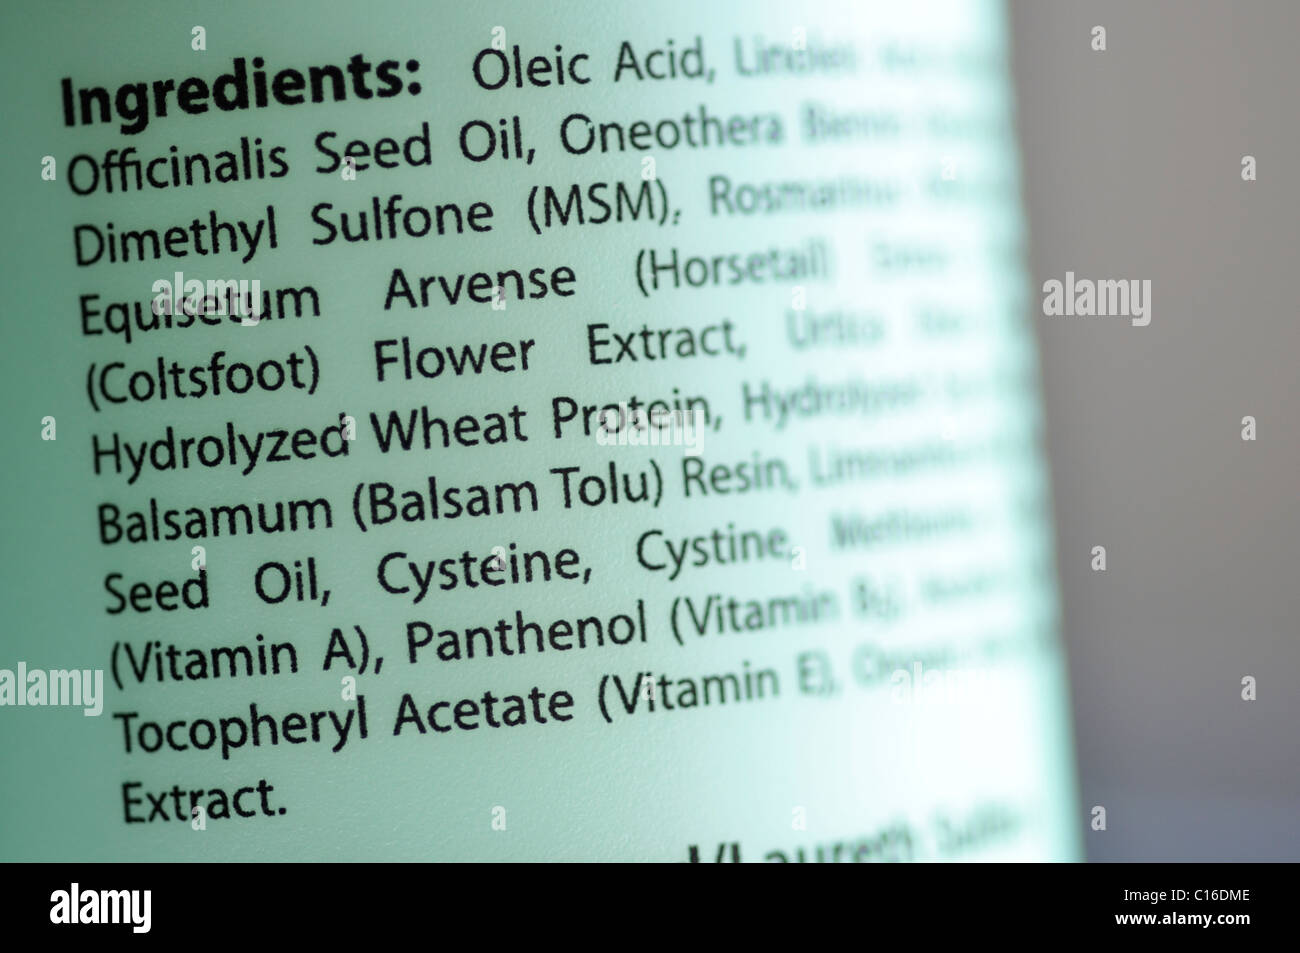 All-natural shampoo ingredient information - Stock Image